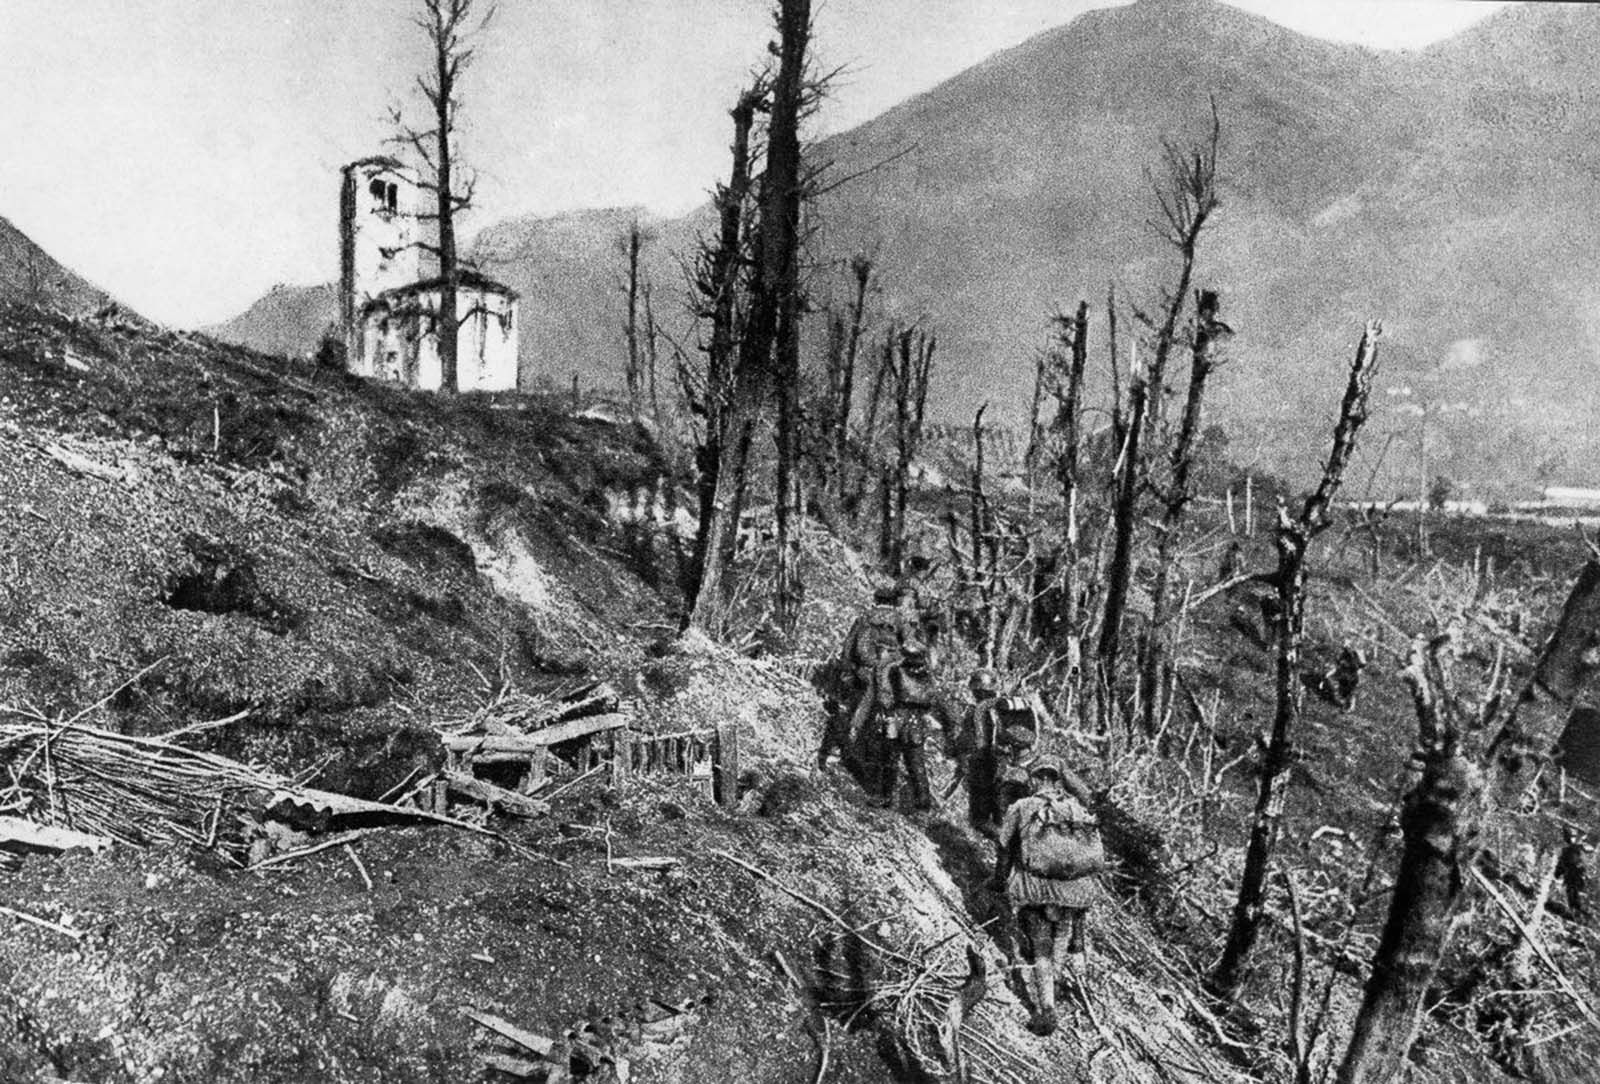 German soldiers pass through destroyed Italian positions near St. Daniel during the 12th Battle of the Isonzo. 1917.